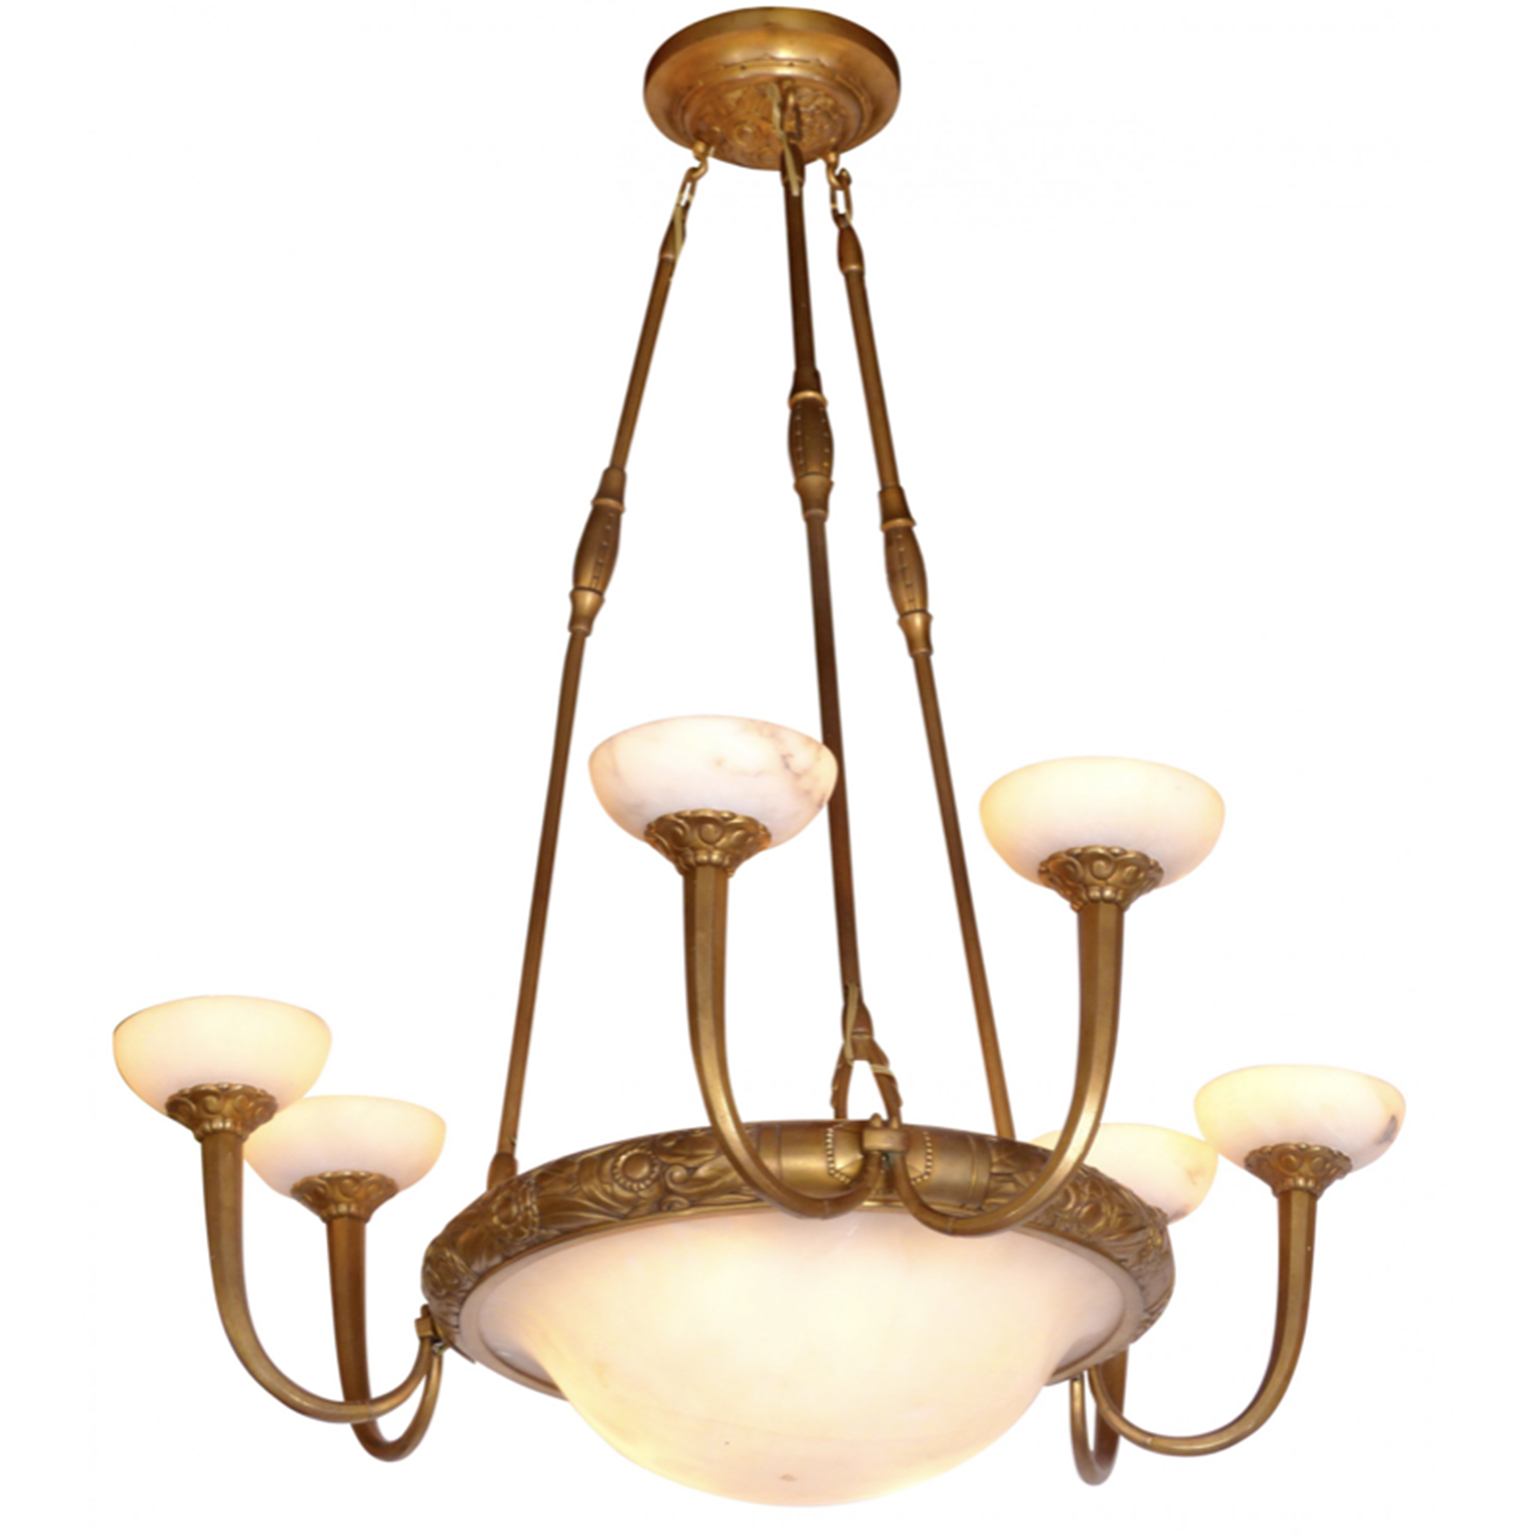 Art Deco chandelier with frosted glass and brass hardware.